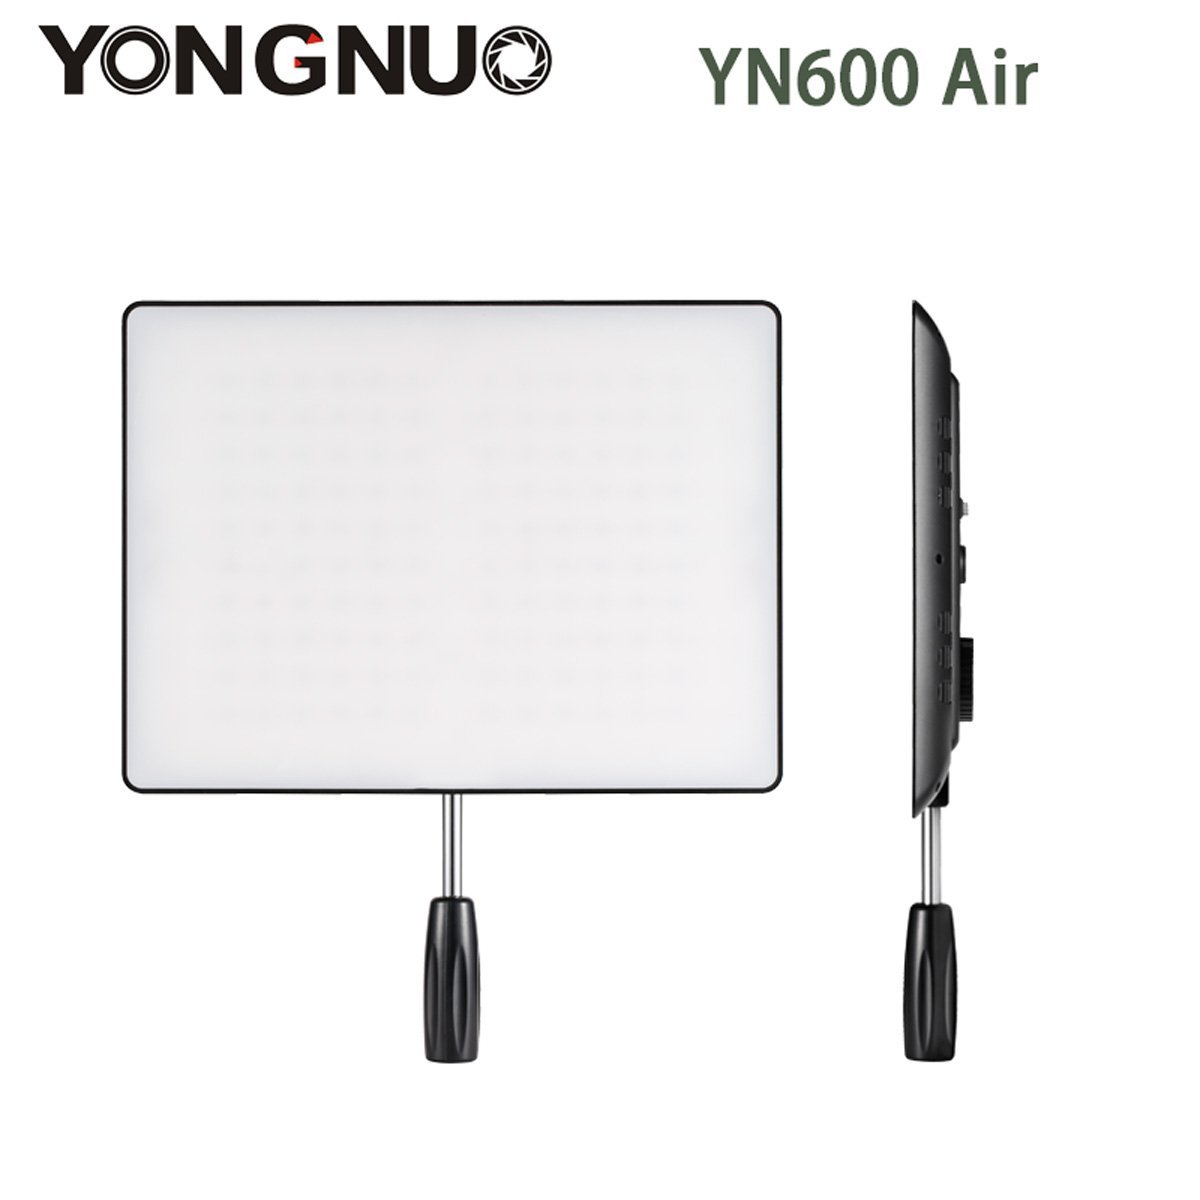 <font><b>YONGNUO</b></font> <font><b>YN600</b></font> Air Ultra Thin LED Camera Video Light 3200K-5500K for Canon Nikon Pentax Olympas Samsung DSLR & Camcorder image